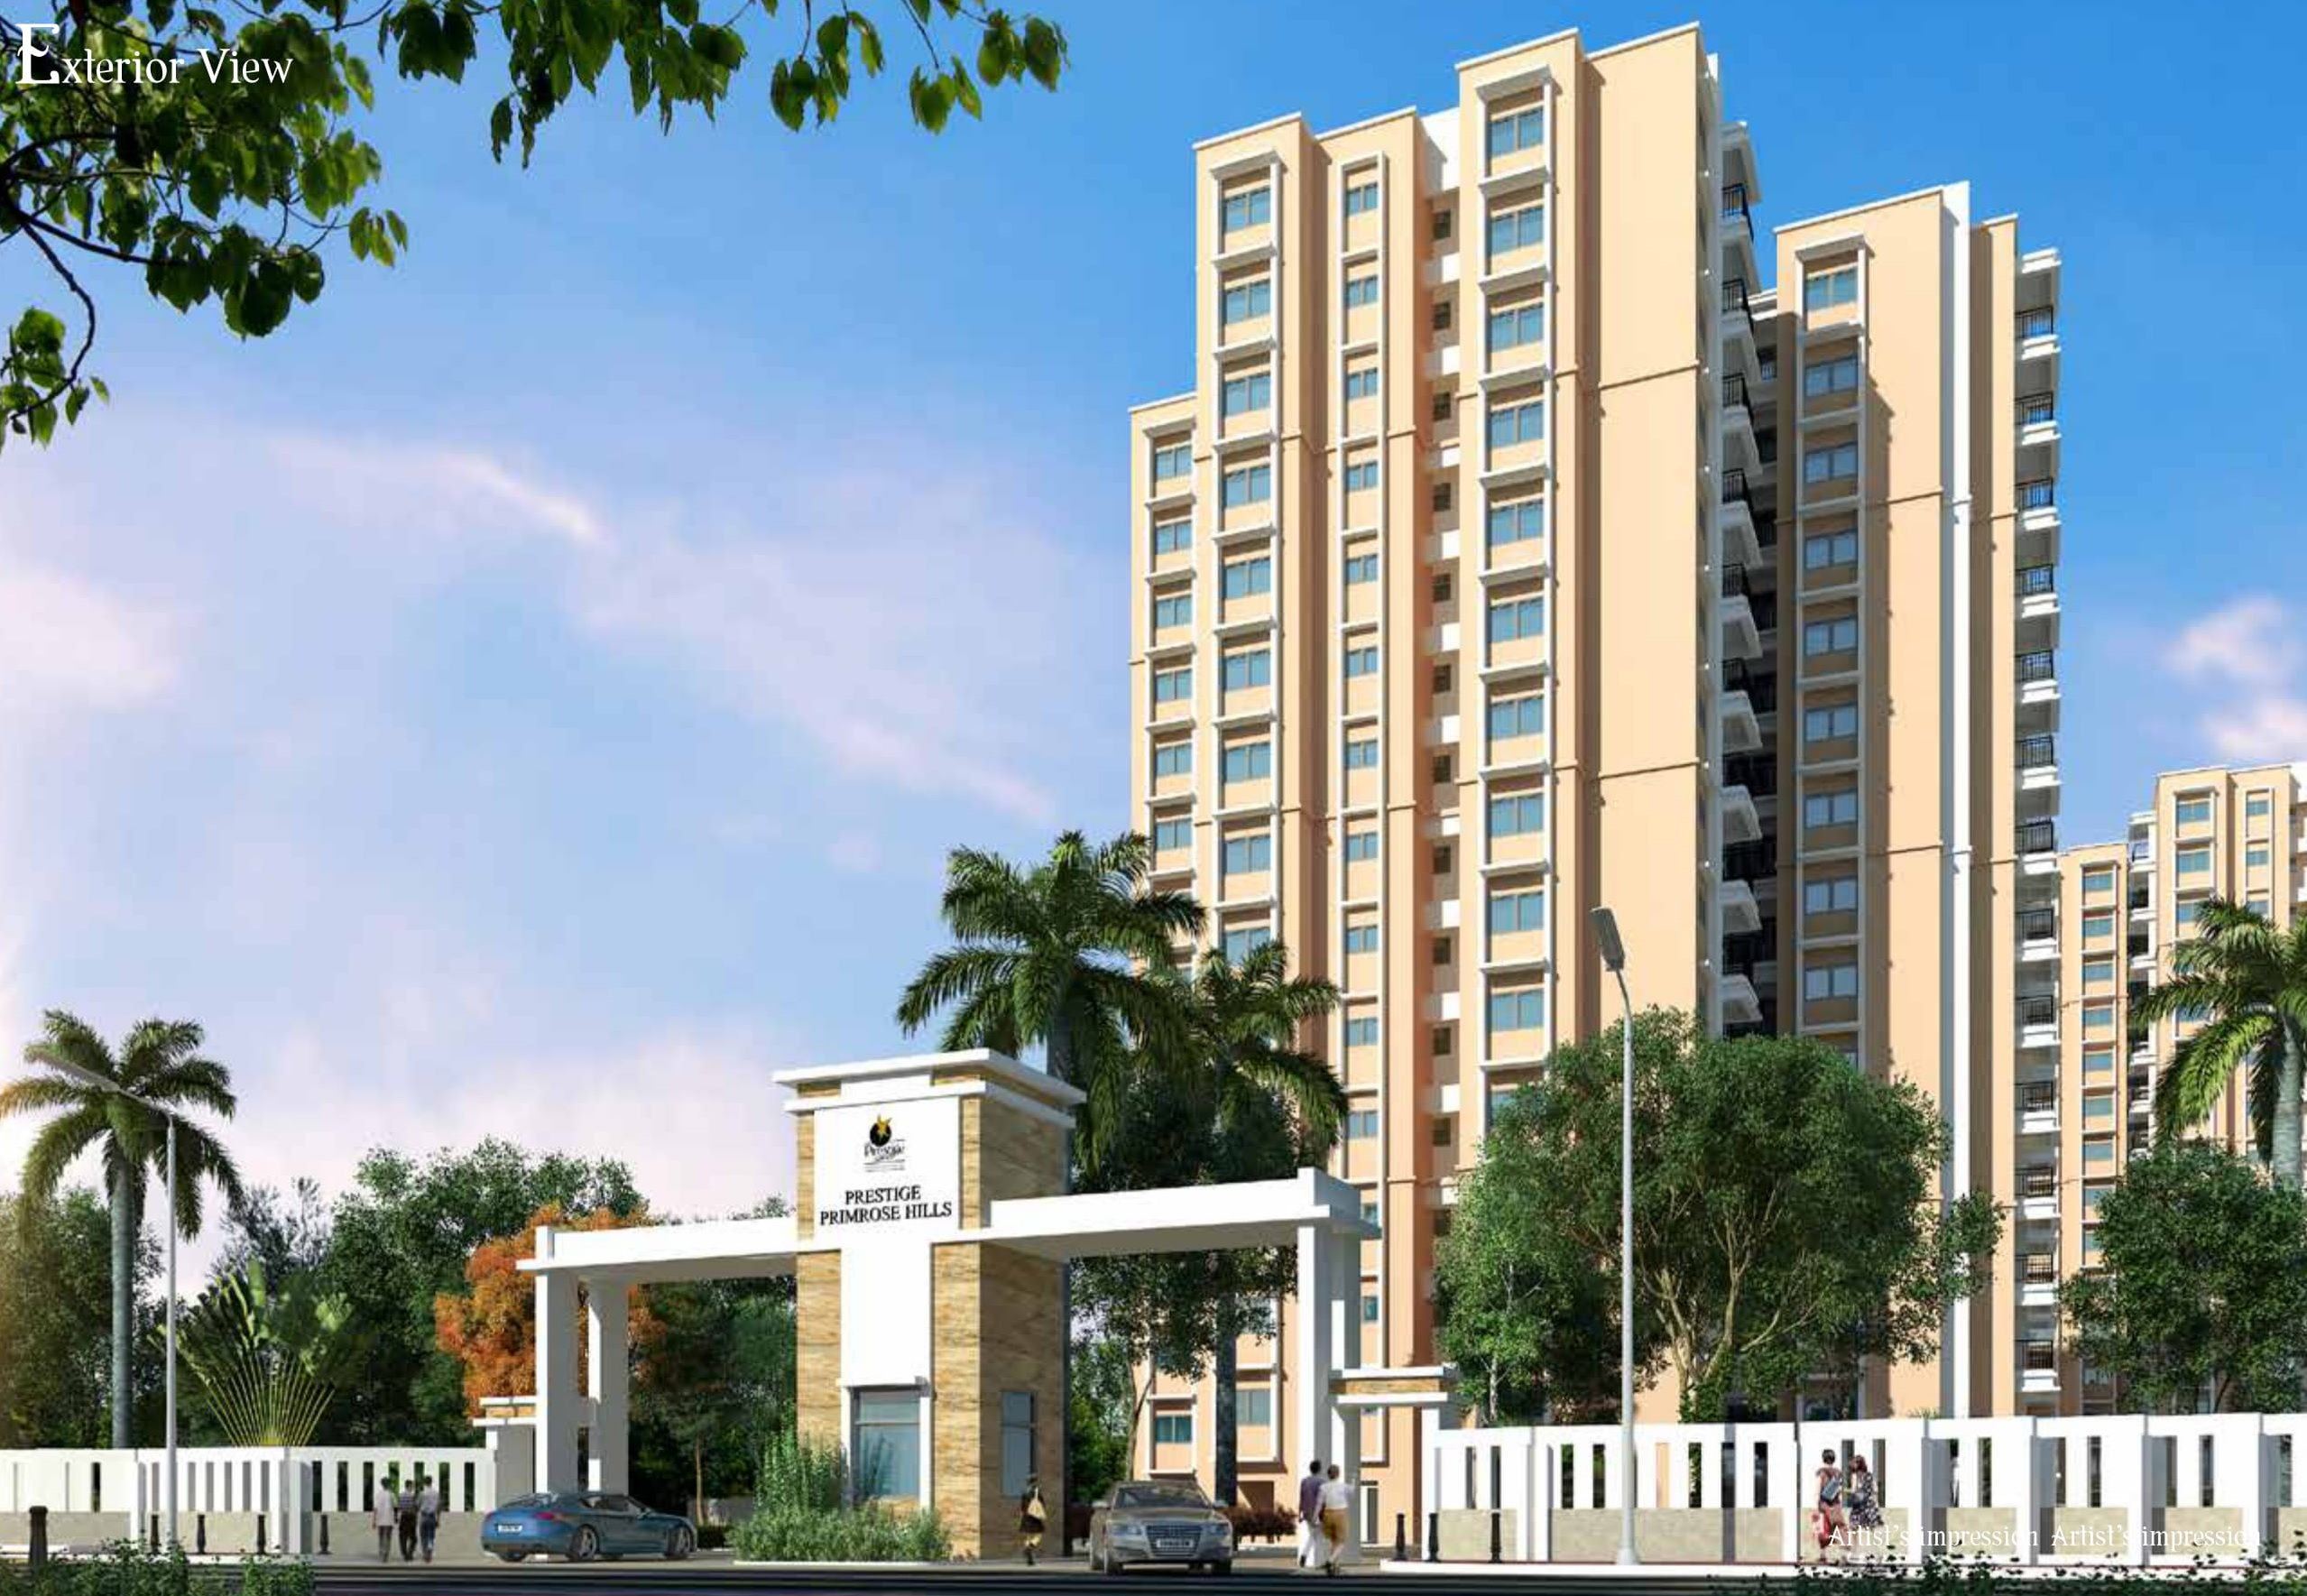 1/2 BHK Apartments in kanakapura Road by Prestige group